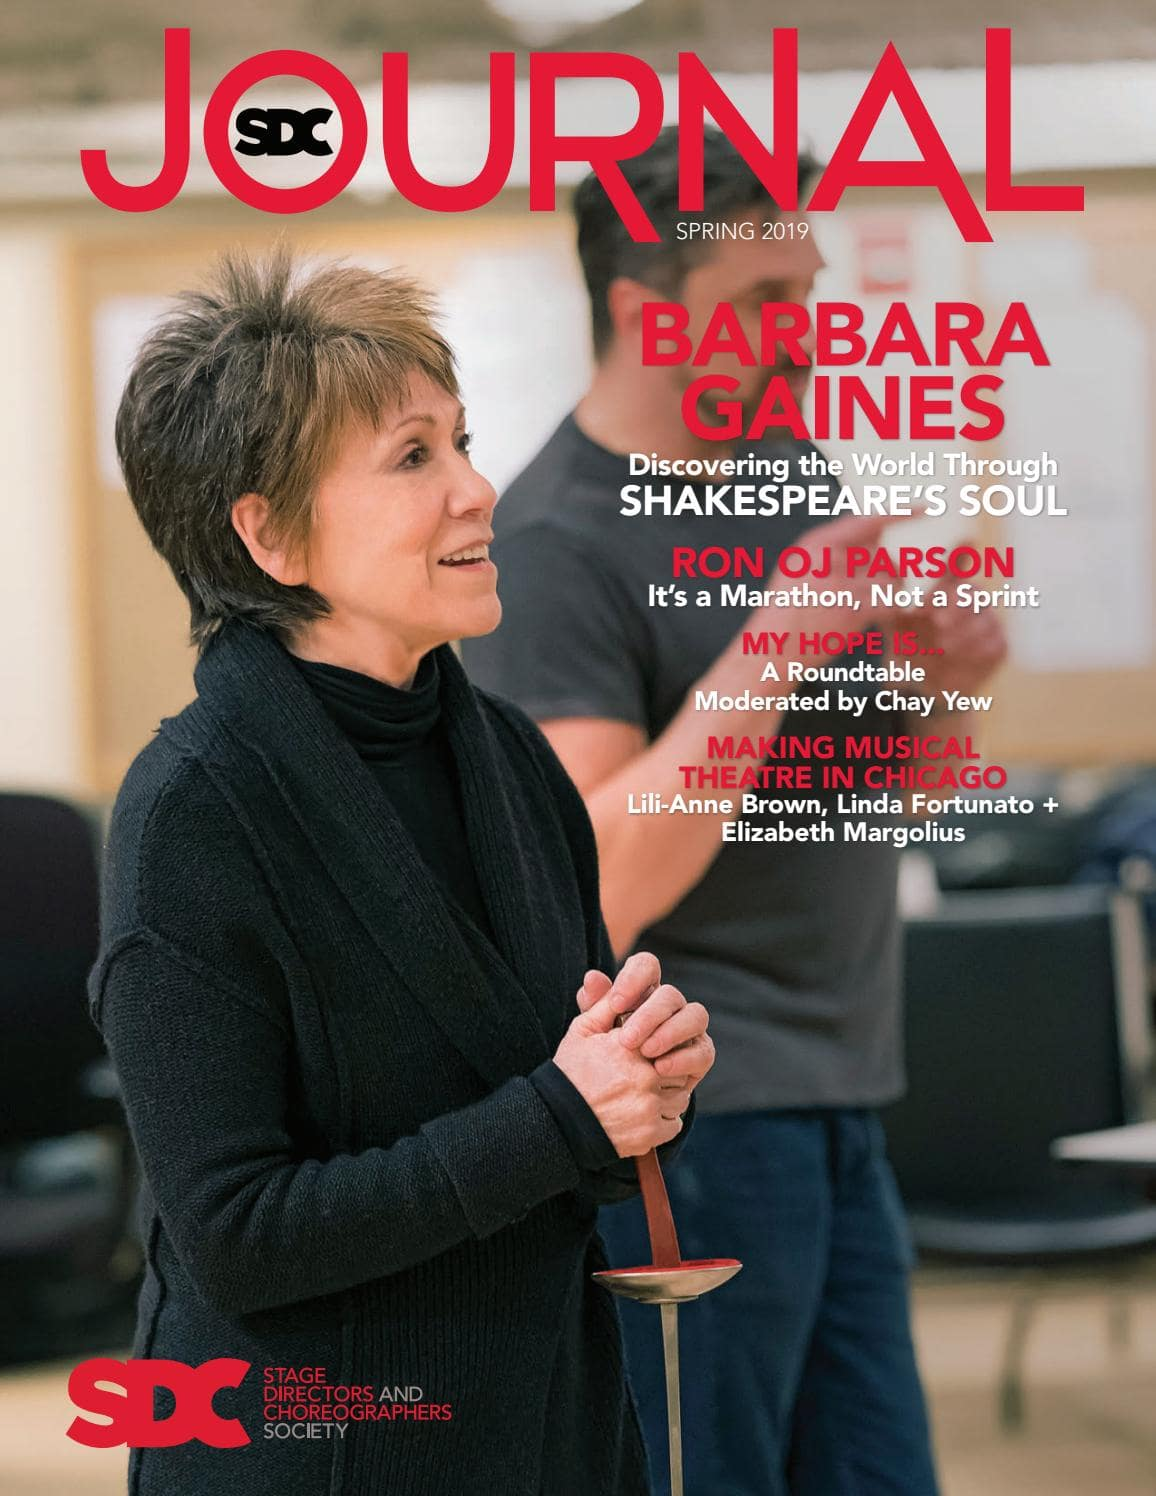 Read Elizabeth's SDC Journal cover-feature interview (along with fellow Chicago theatremakers Lili-Anne Brown and Linda Fortunato)